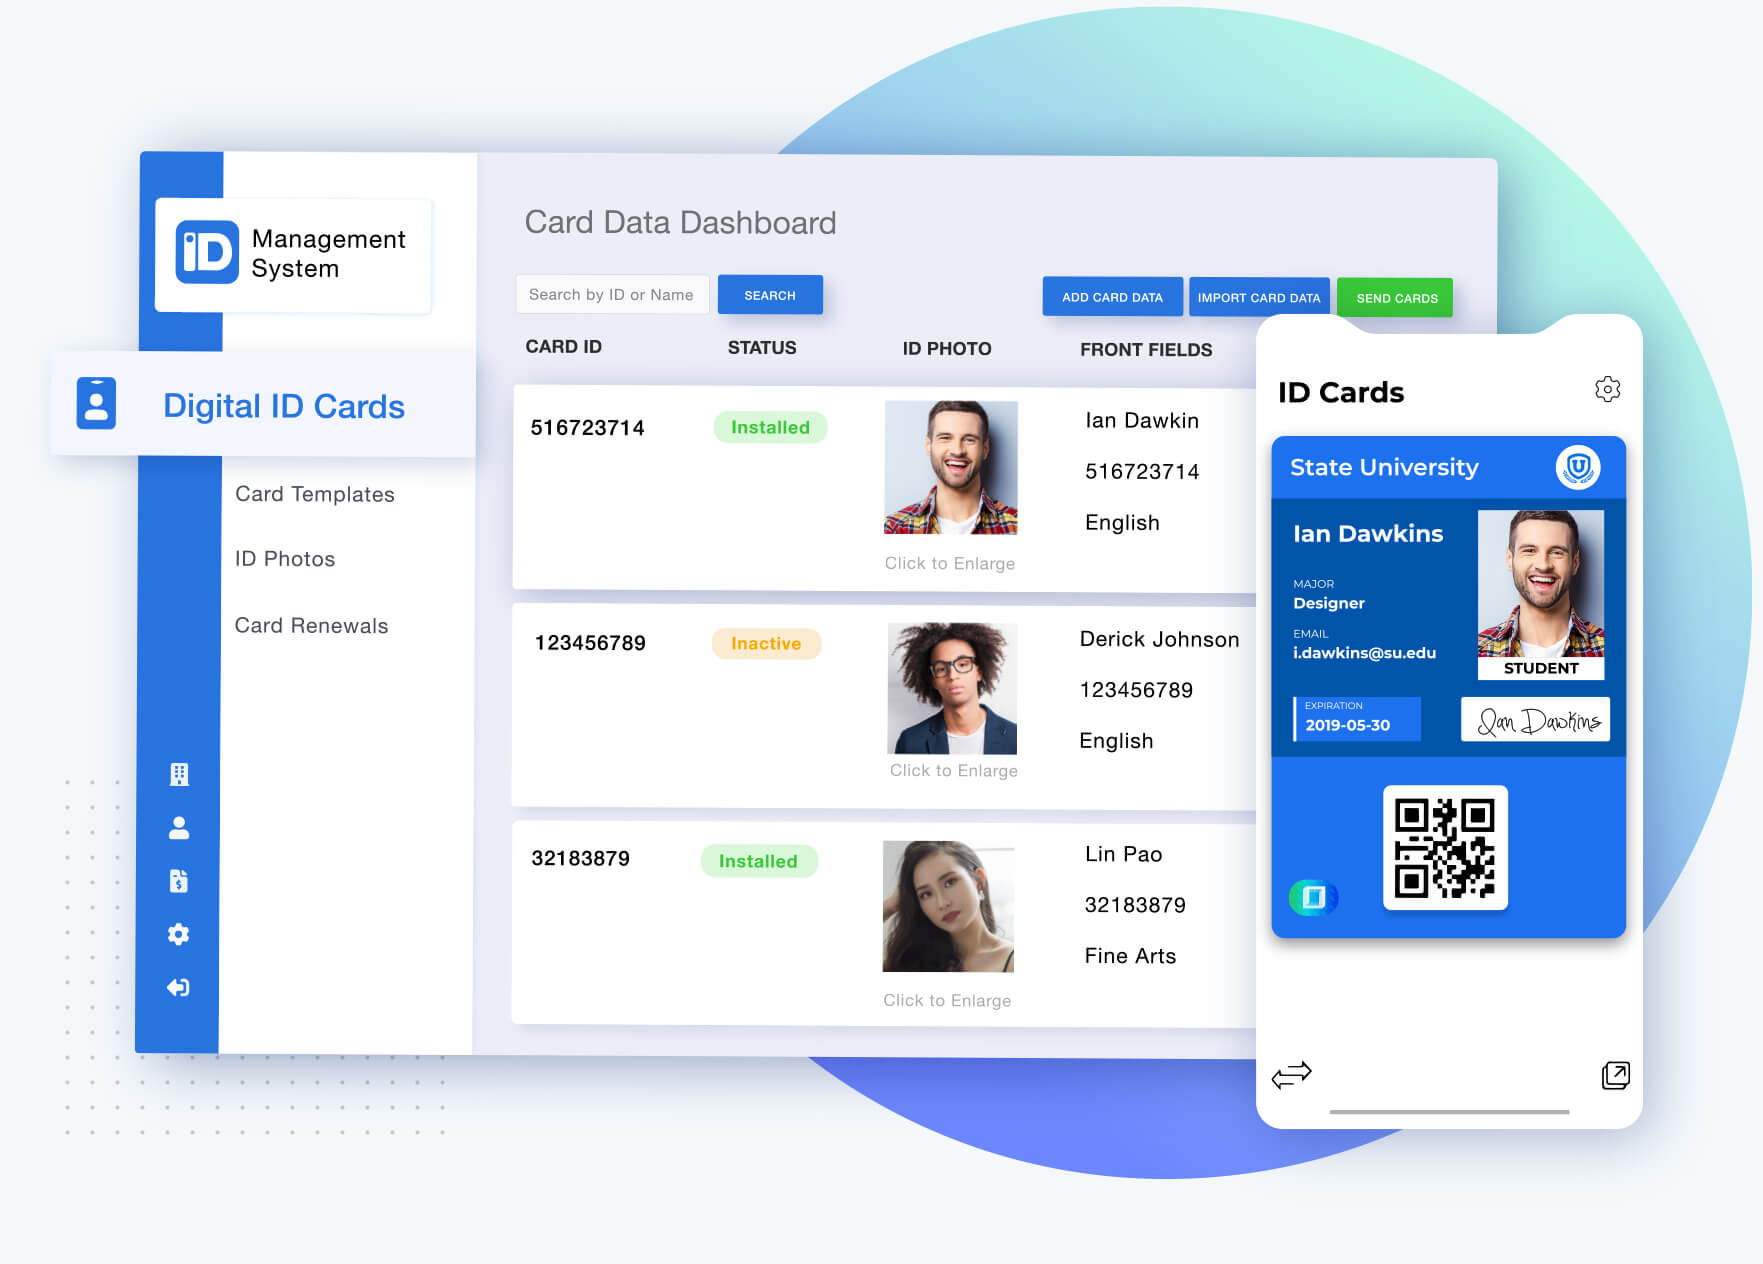 Digital ID card App and Web Platform